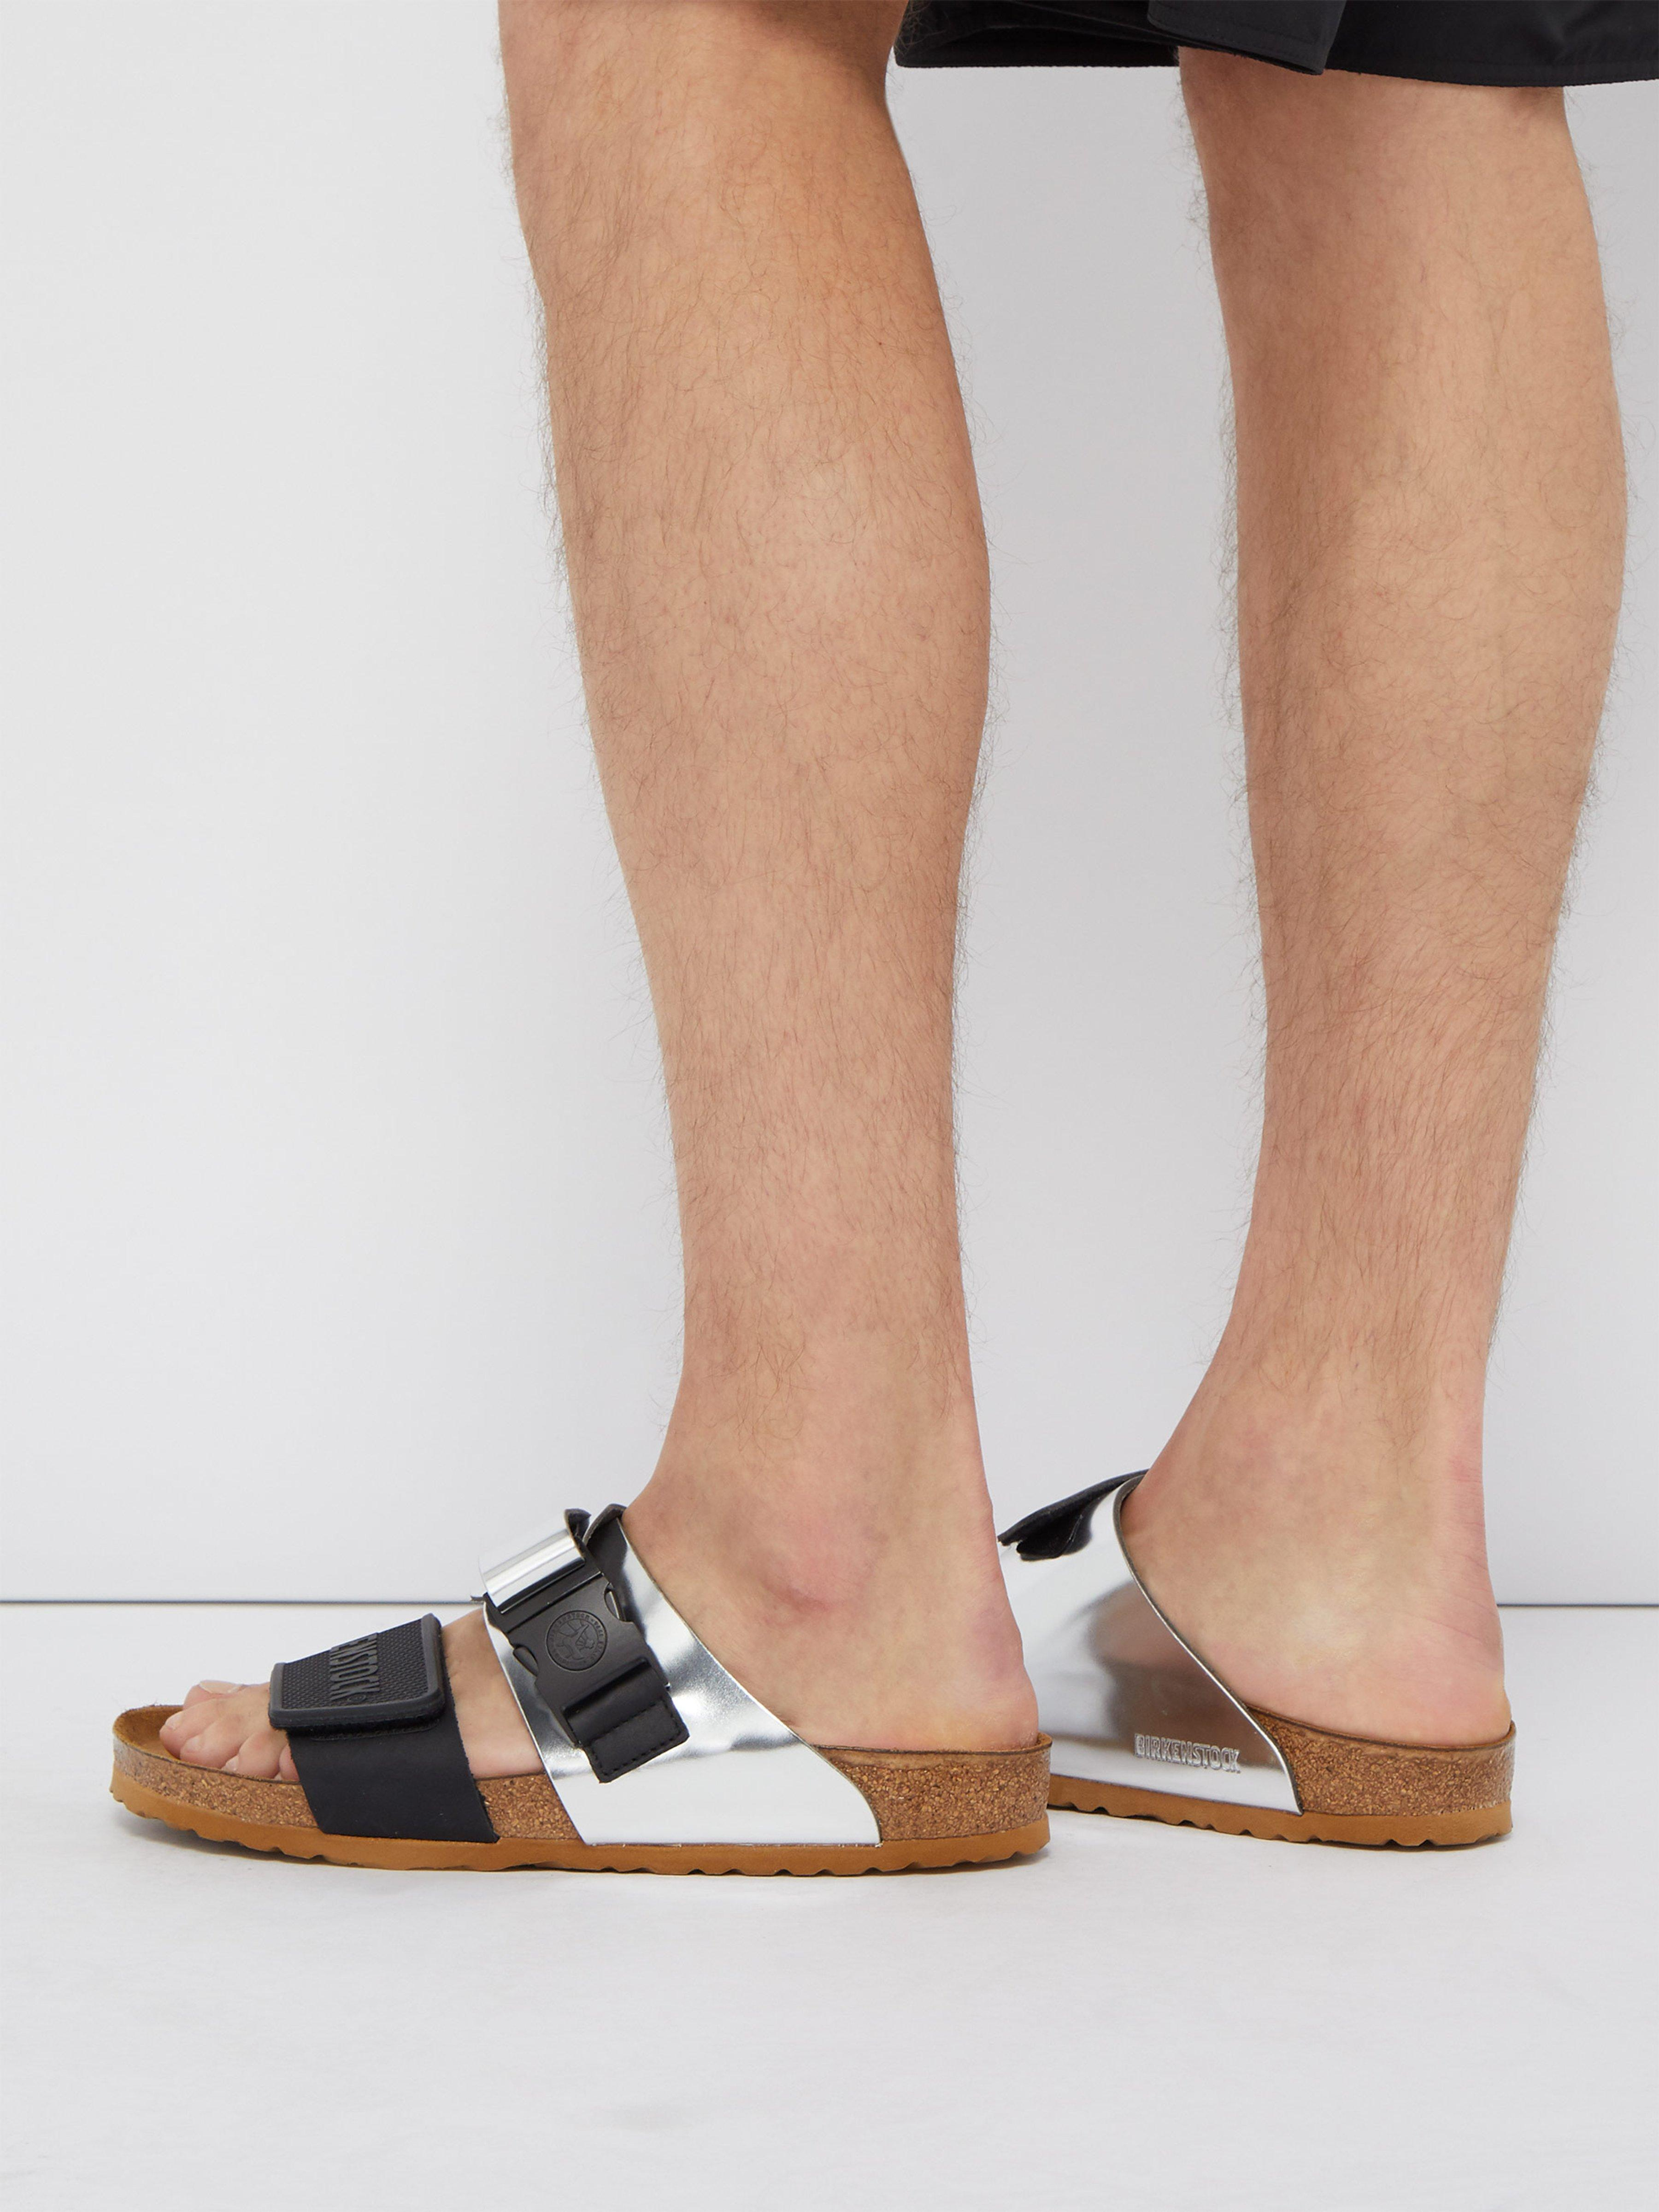 fb512bbb26dd47 Rick Owens X Birkenstock Arizona Leather Sandals for Men - Lyst